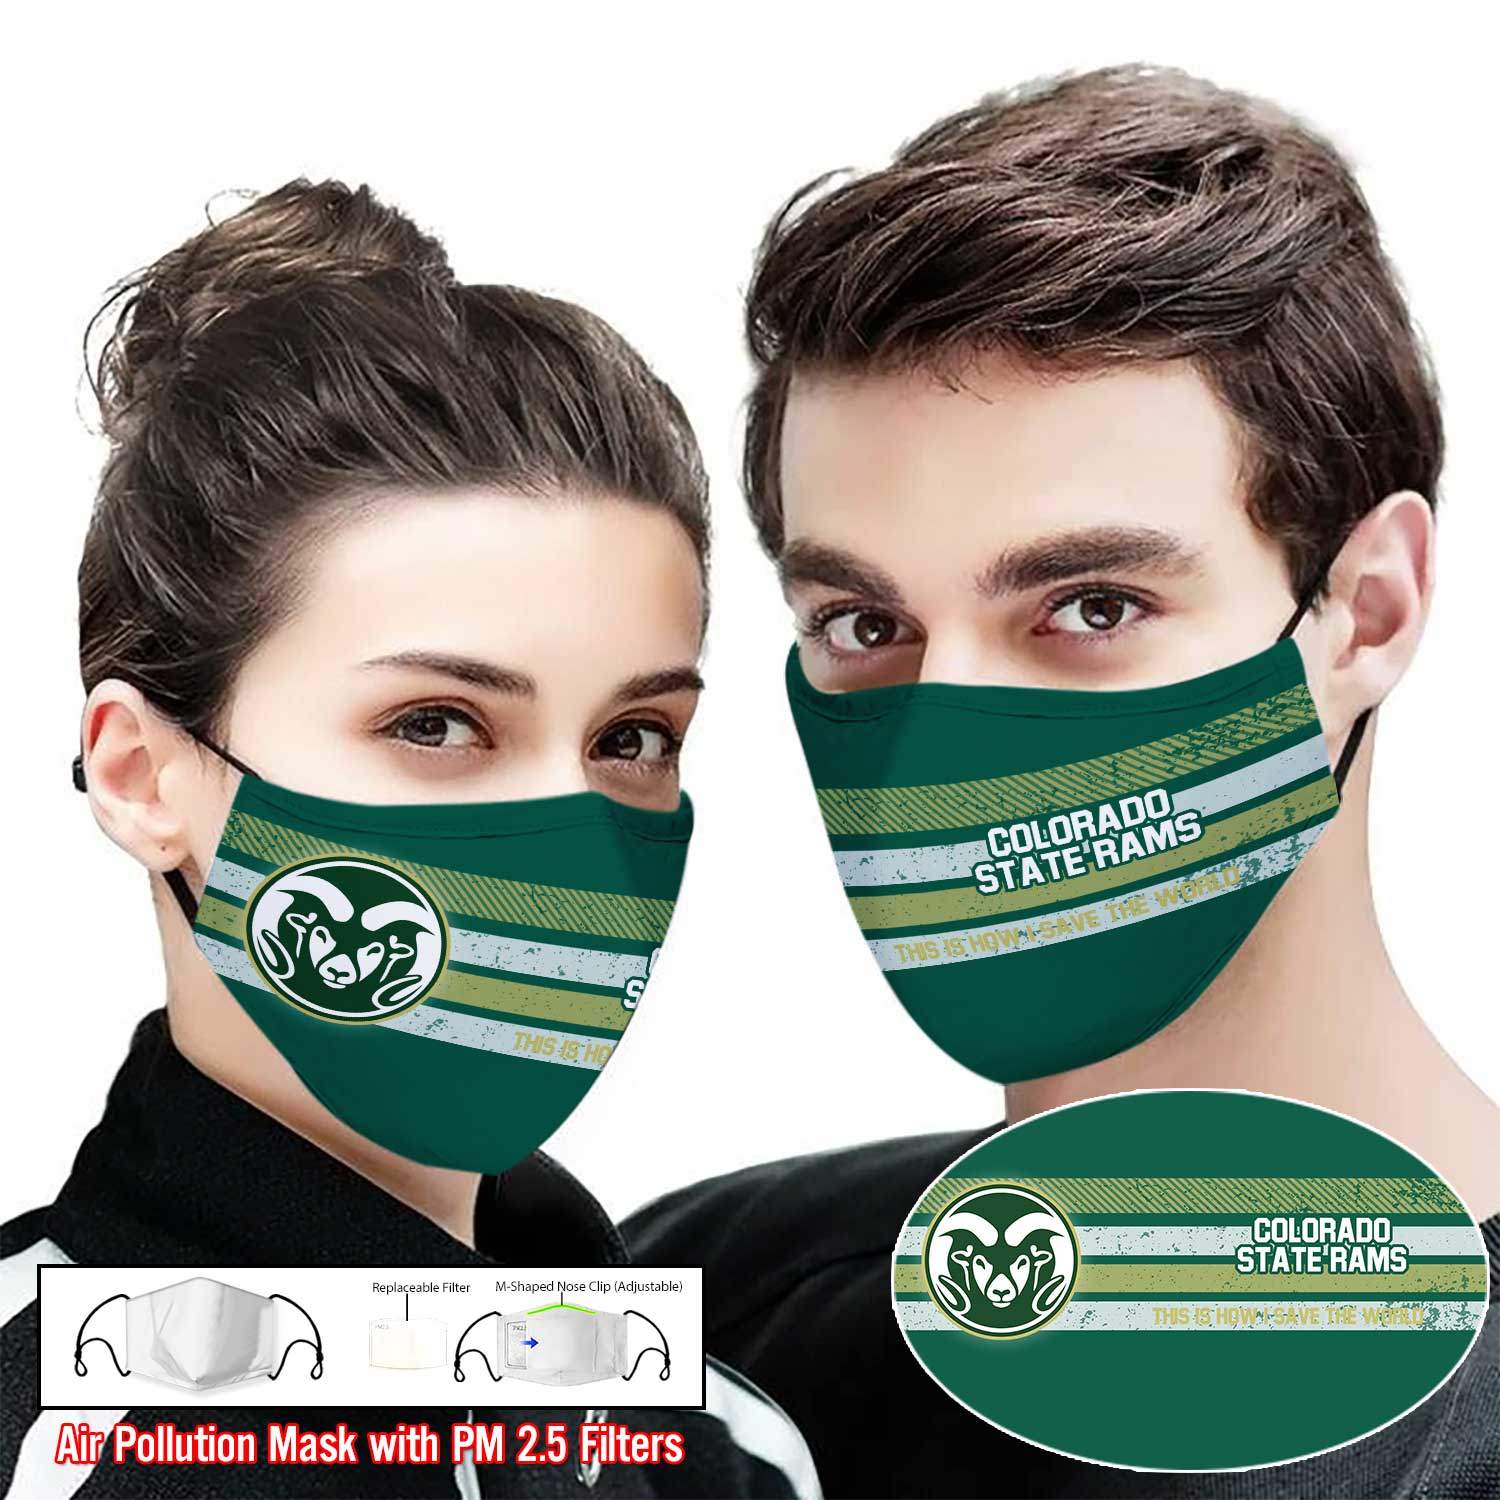 Colorado state rams this is how i save the world face mask 1